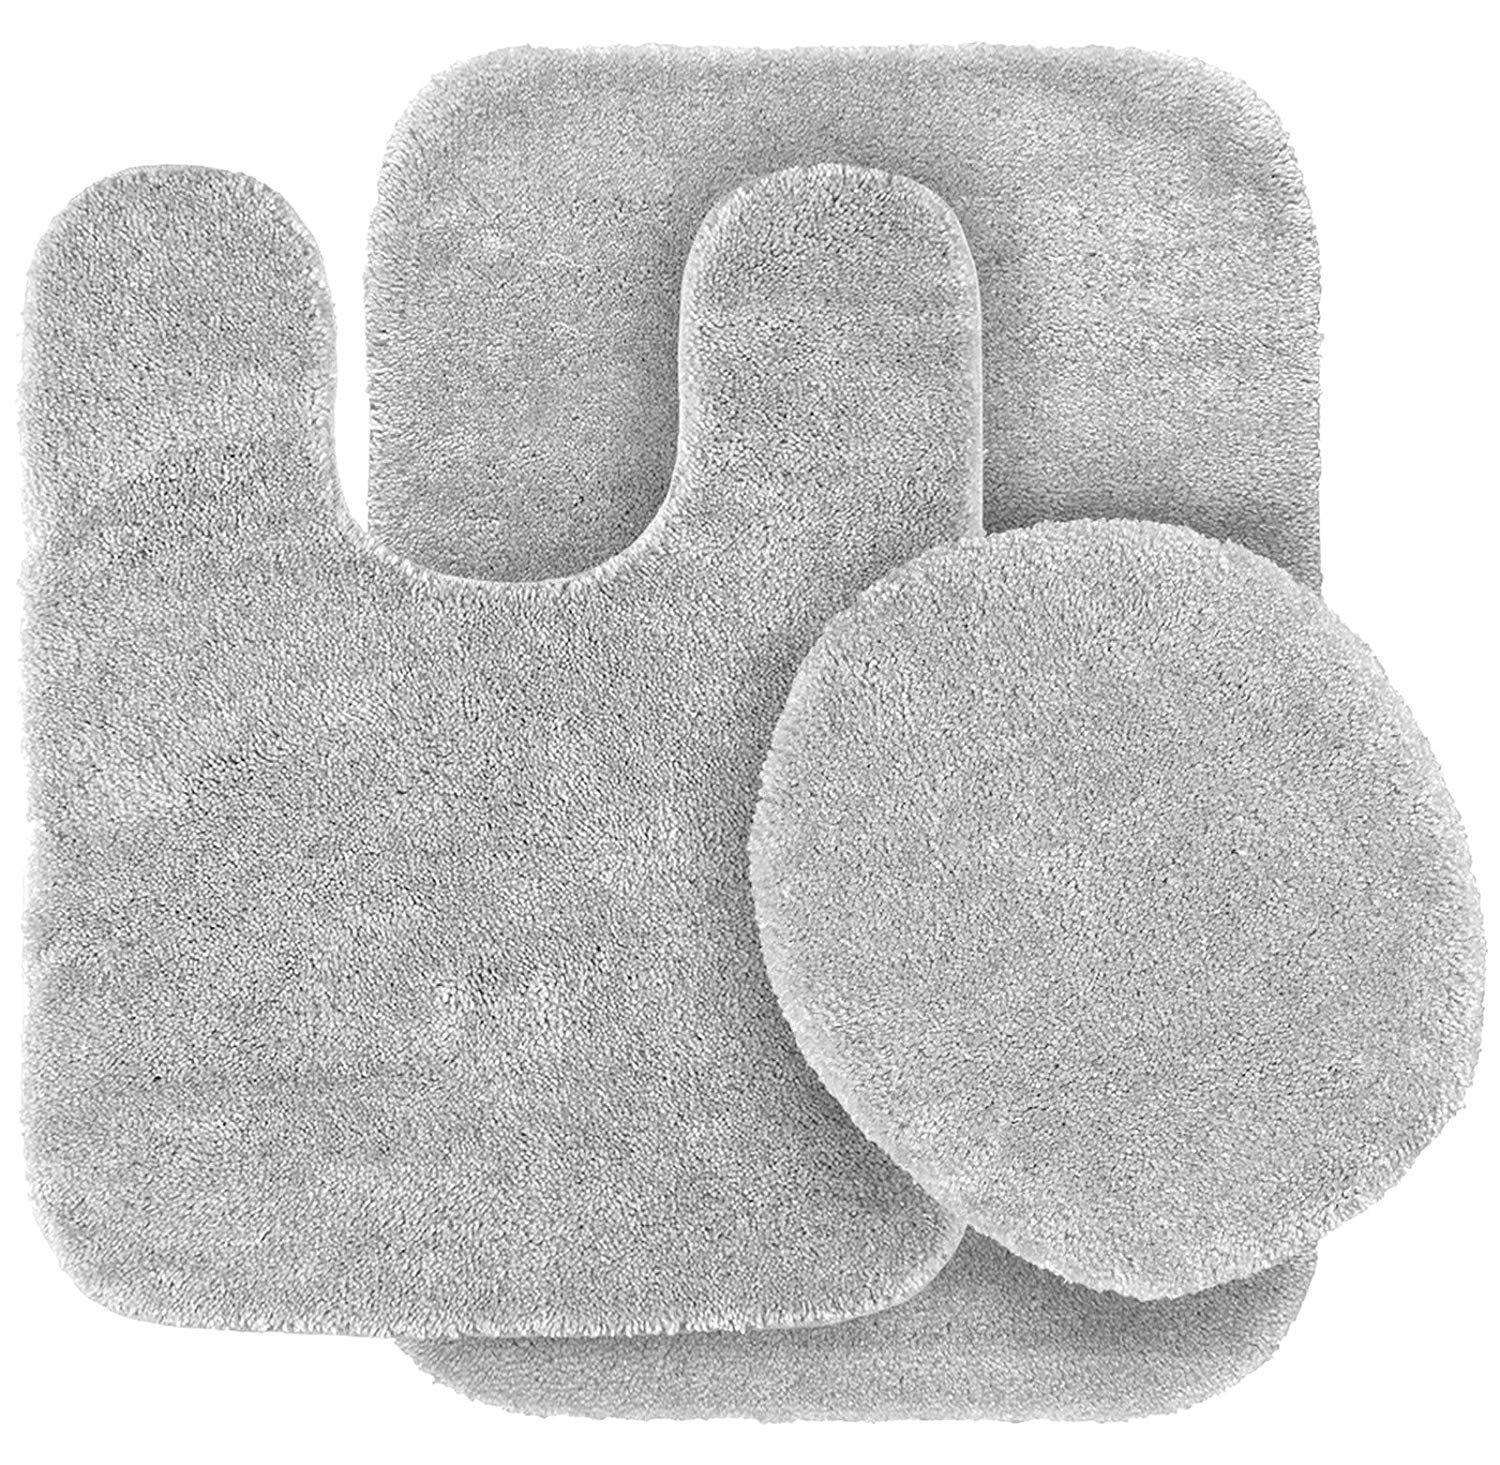 Fancy Linen 3pc Non-Slip Bath Mat Set Solid Silver/Light Grey Bathroom U-Shaped Contour Rug, Mat and Toilet Lid Cover New